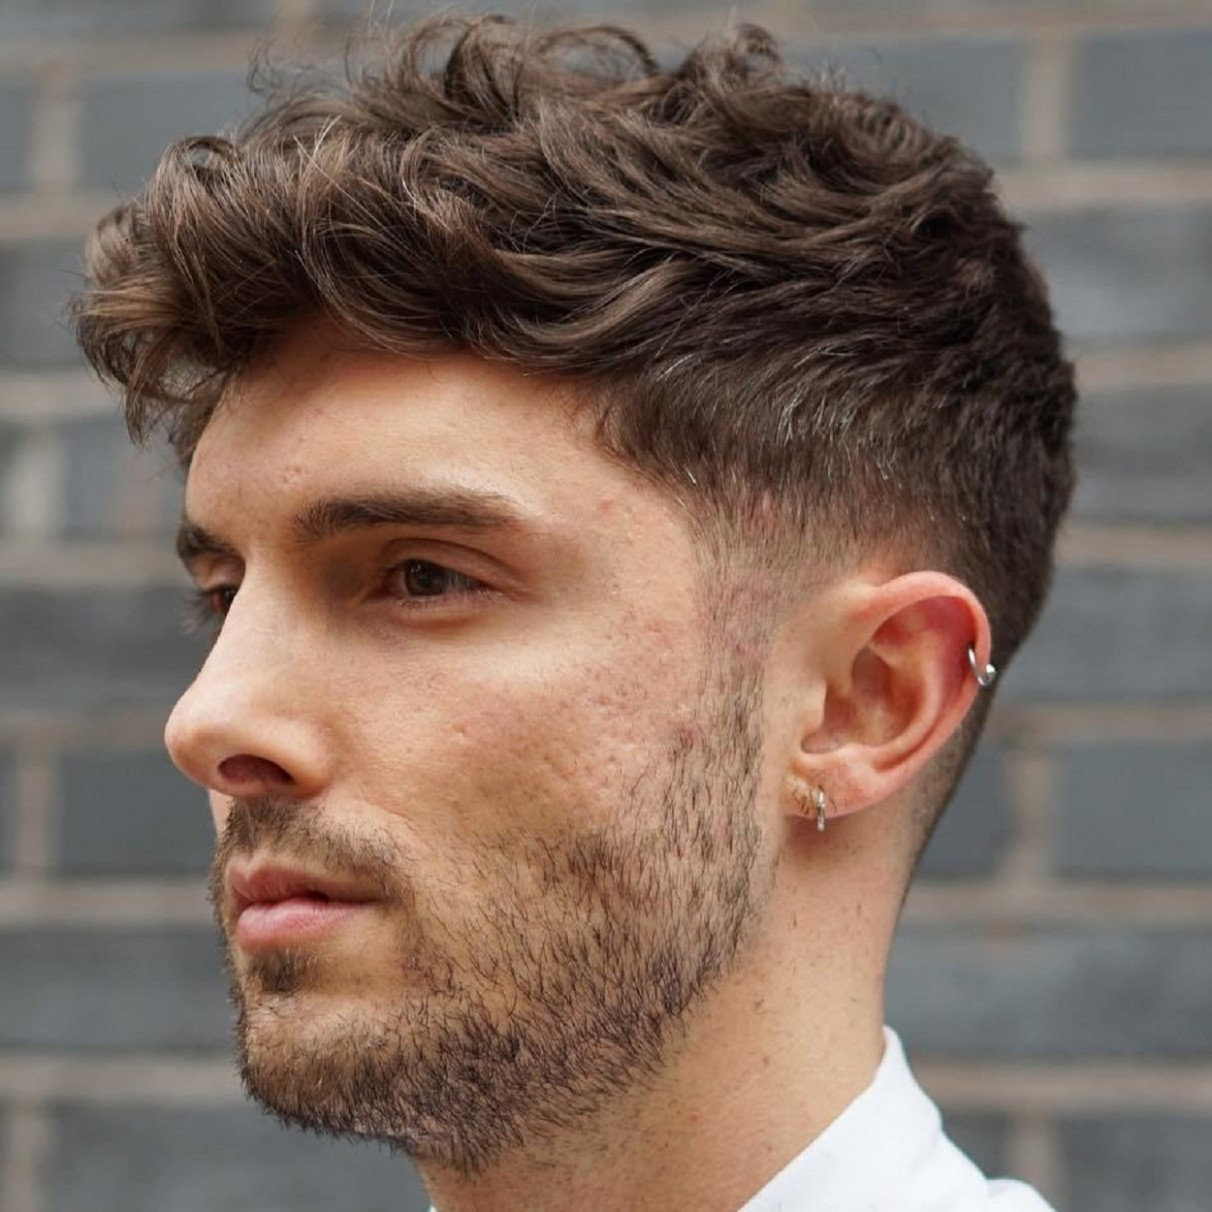 11 Statement Hairstyles For Men With Thick Hair Short Haircuts For Men With Thick Hair